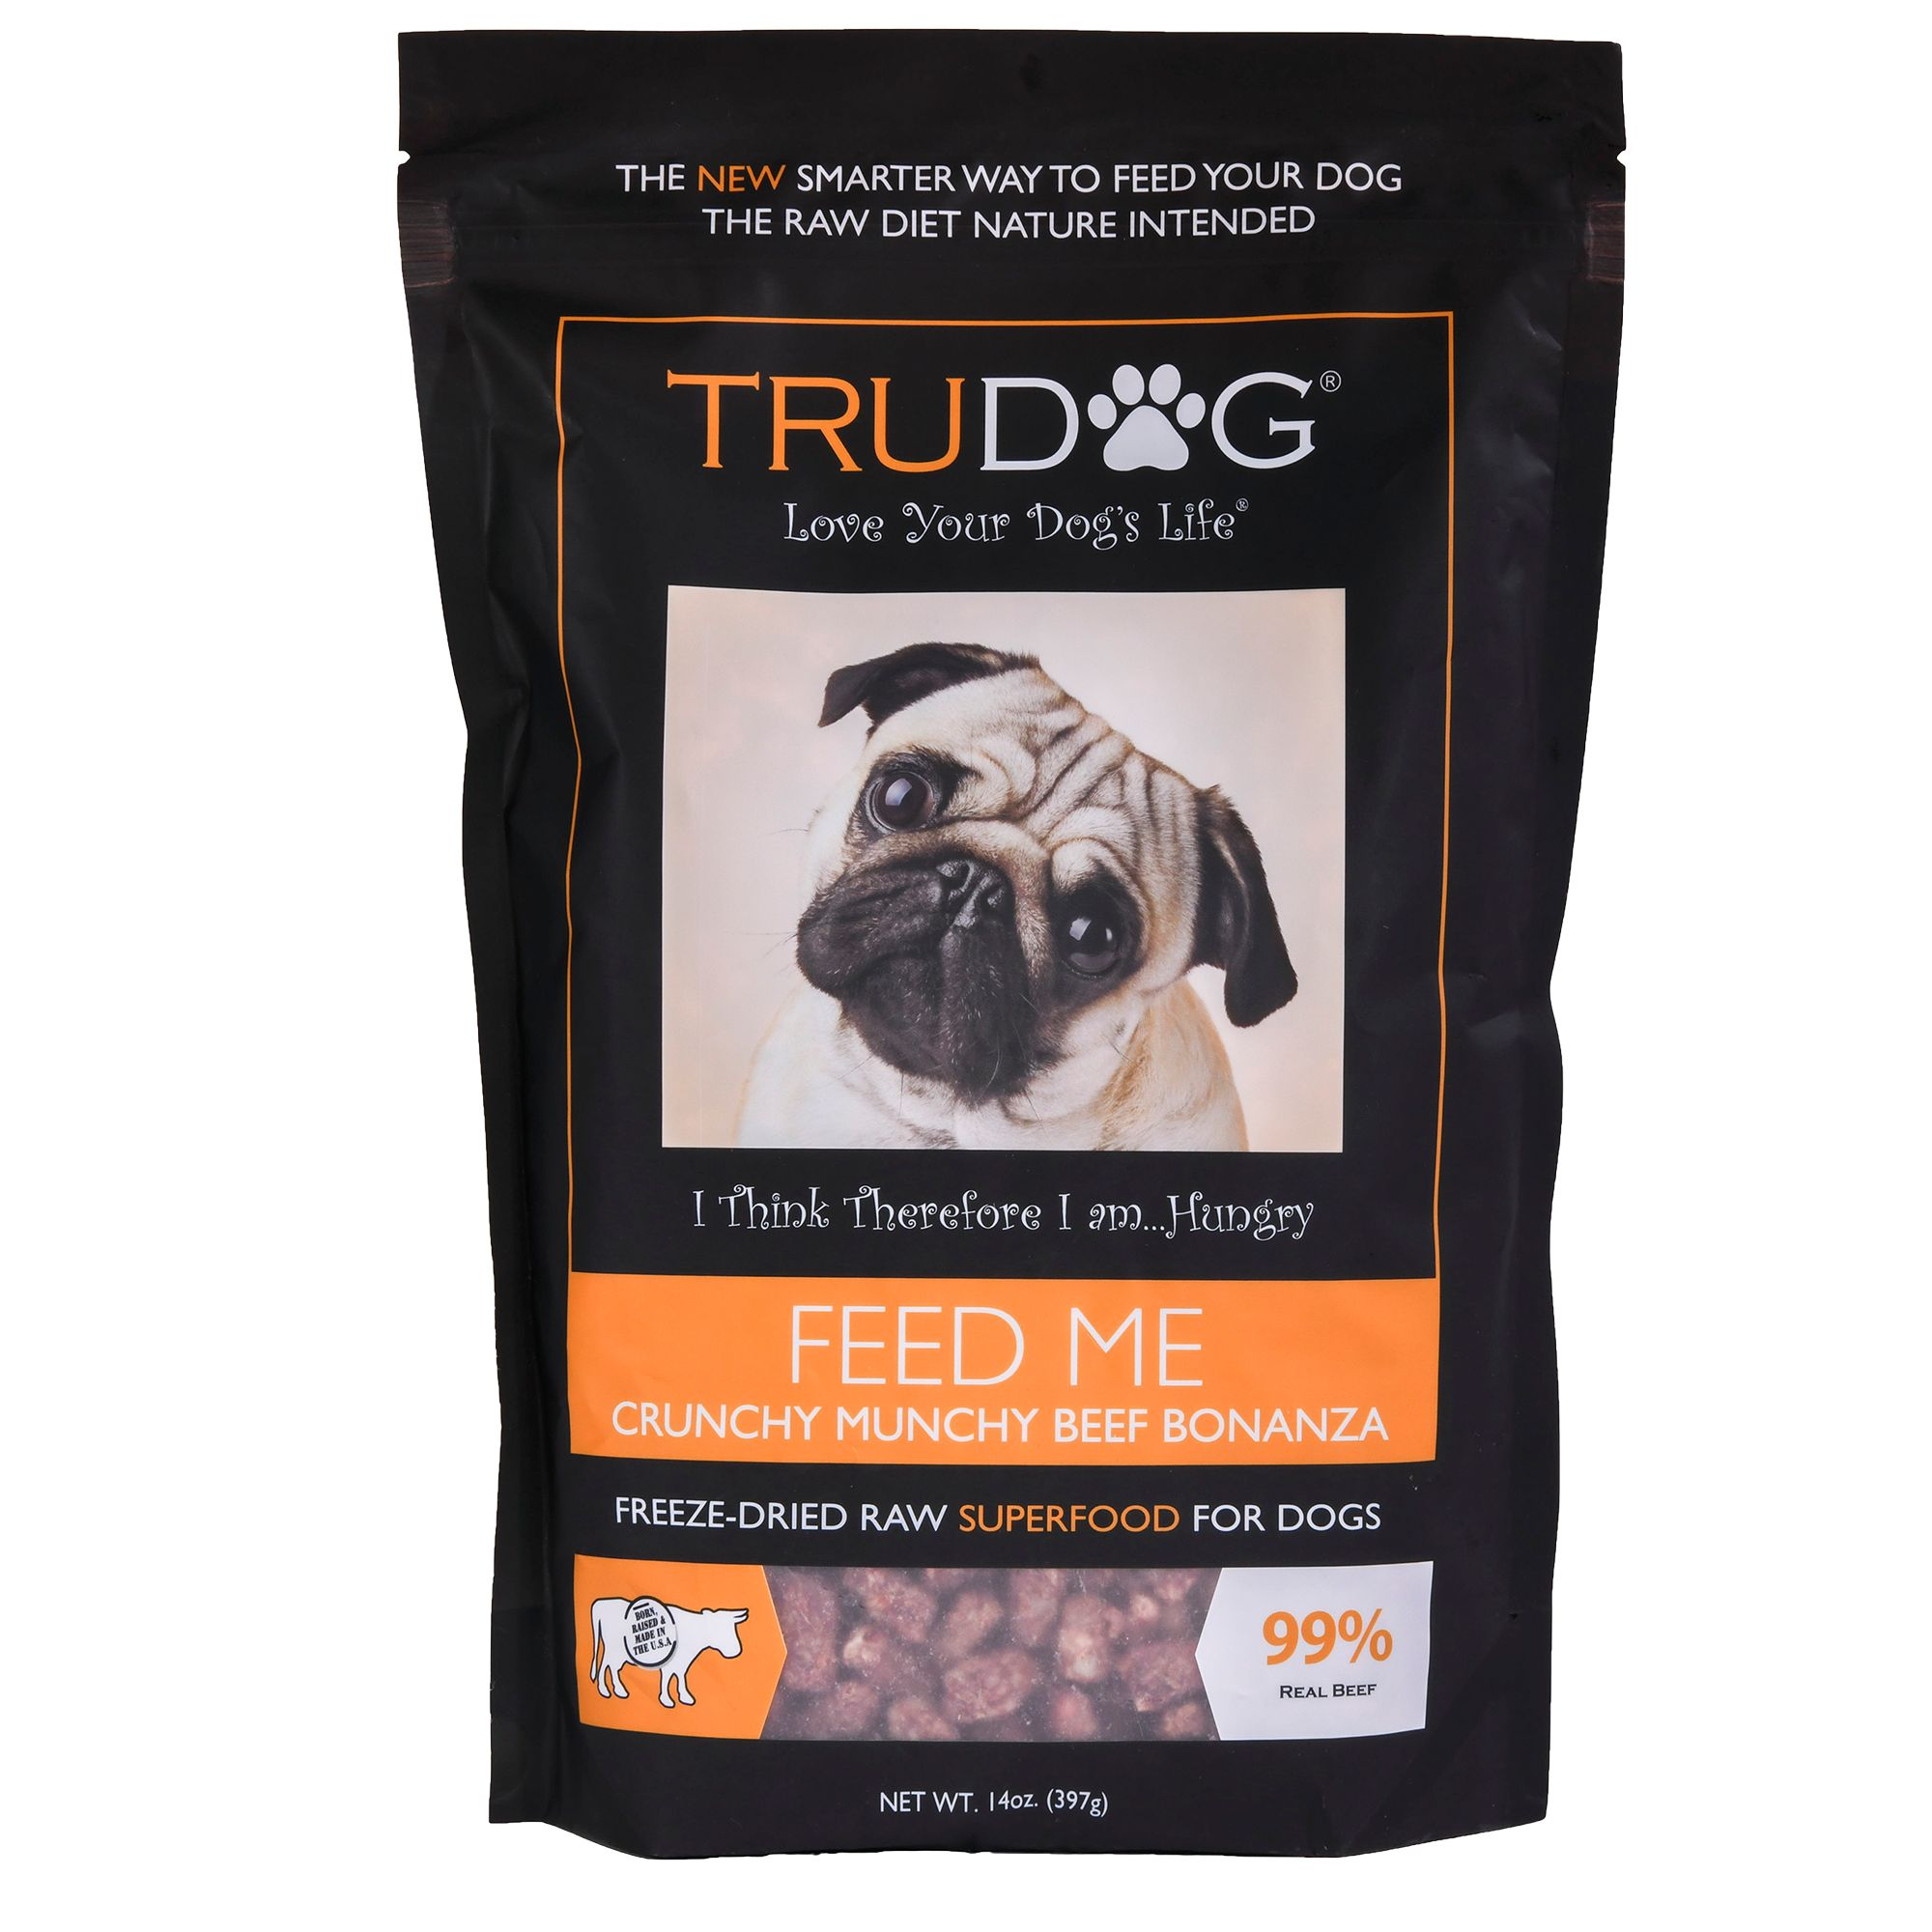 Trudog Feed Me Superfood Dog Food Freeze Dried Raw Natural Crunchy Munchy Beef Bonanza Size 14 Oz